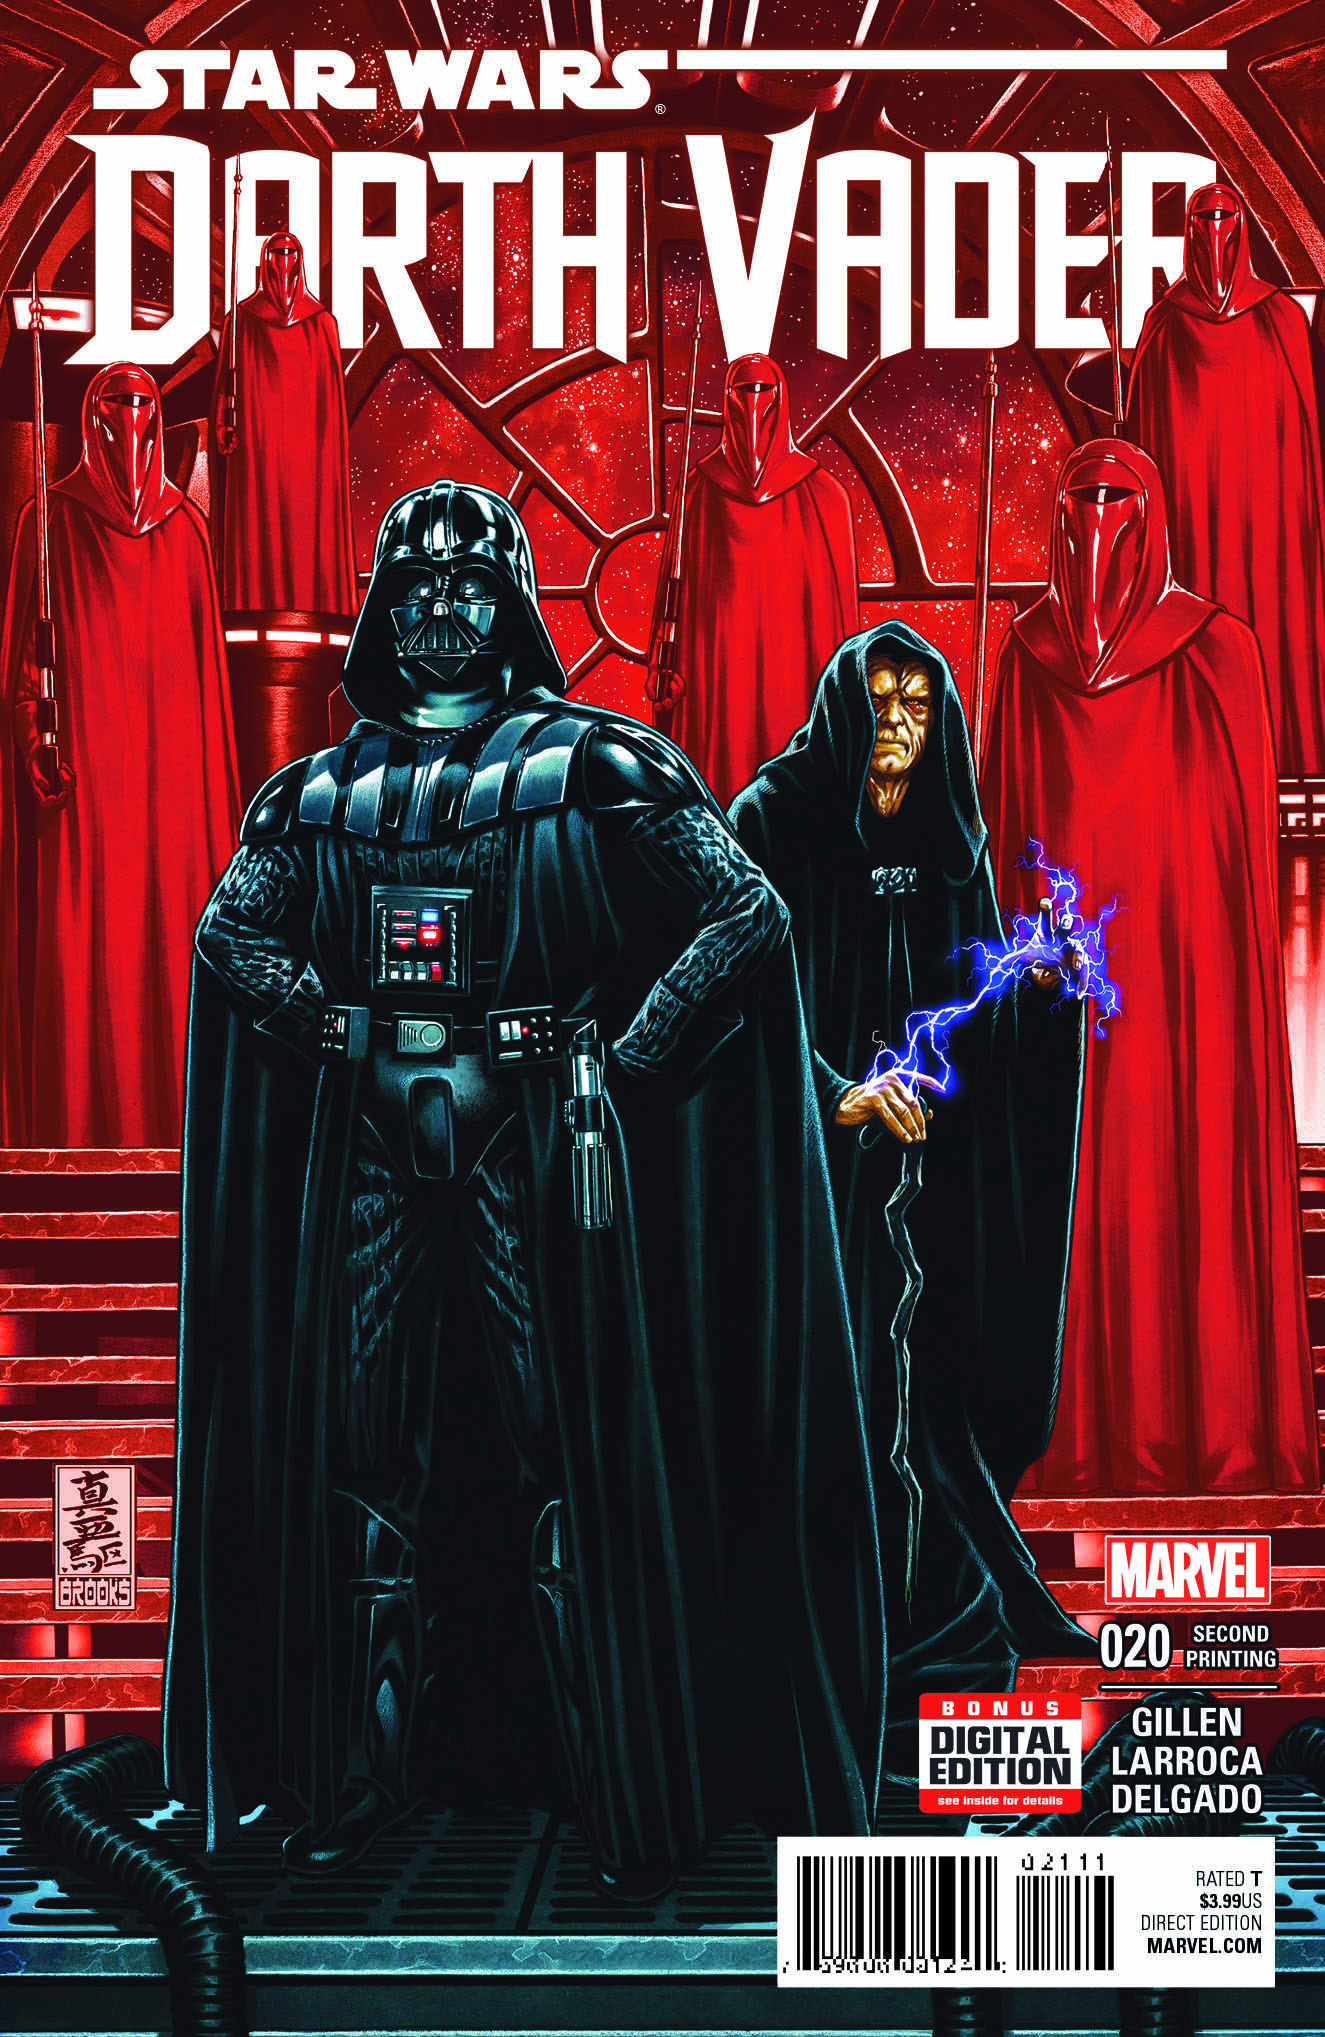 Prepare For the Epic Finale With New Printings of DARTH VADER #20 – #23!